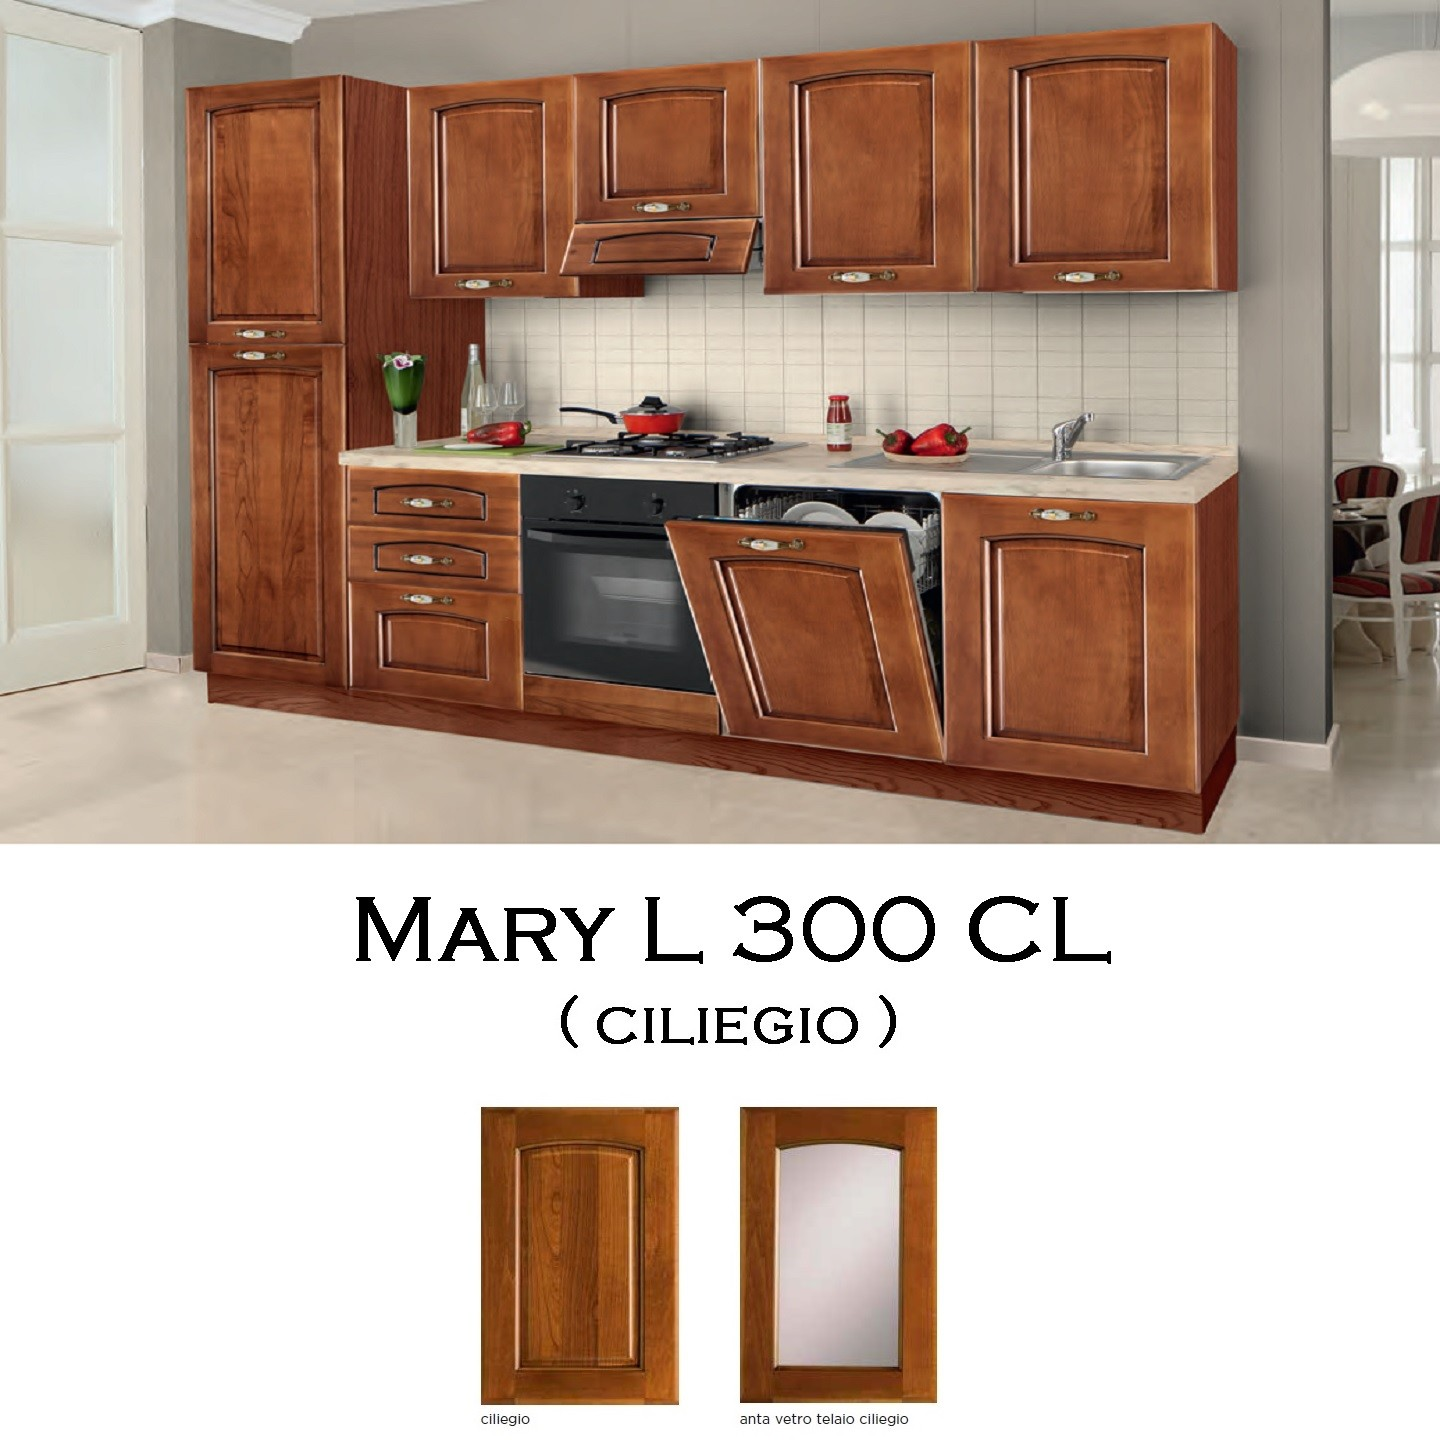 Cucina Mary L 300 CL